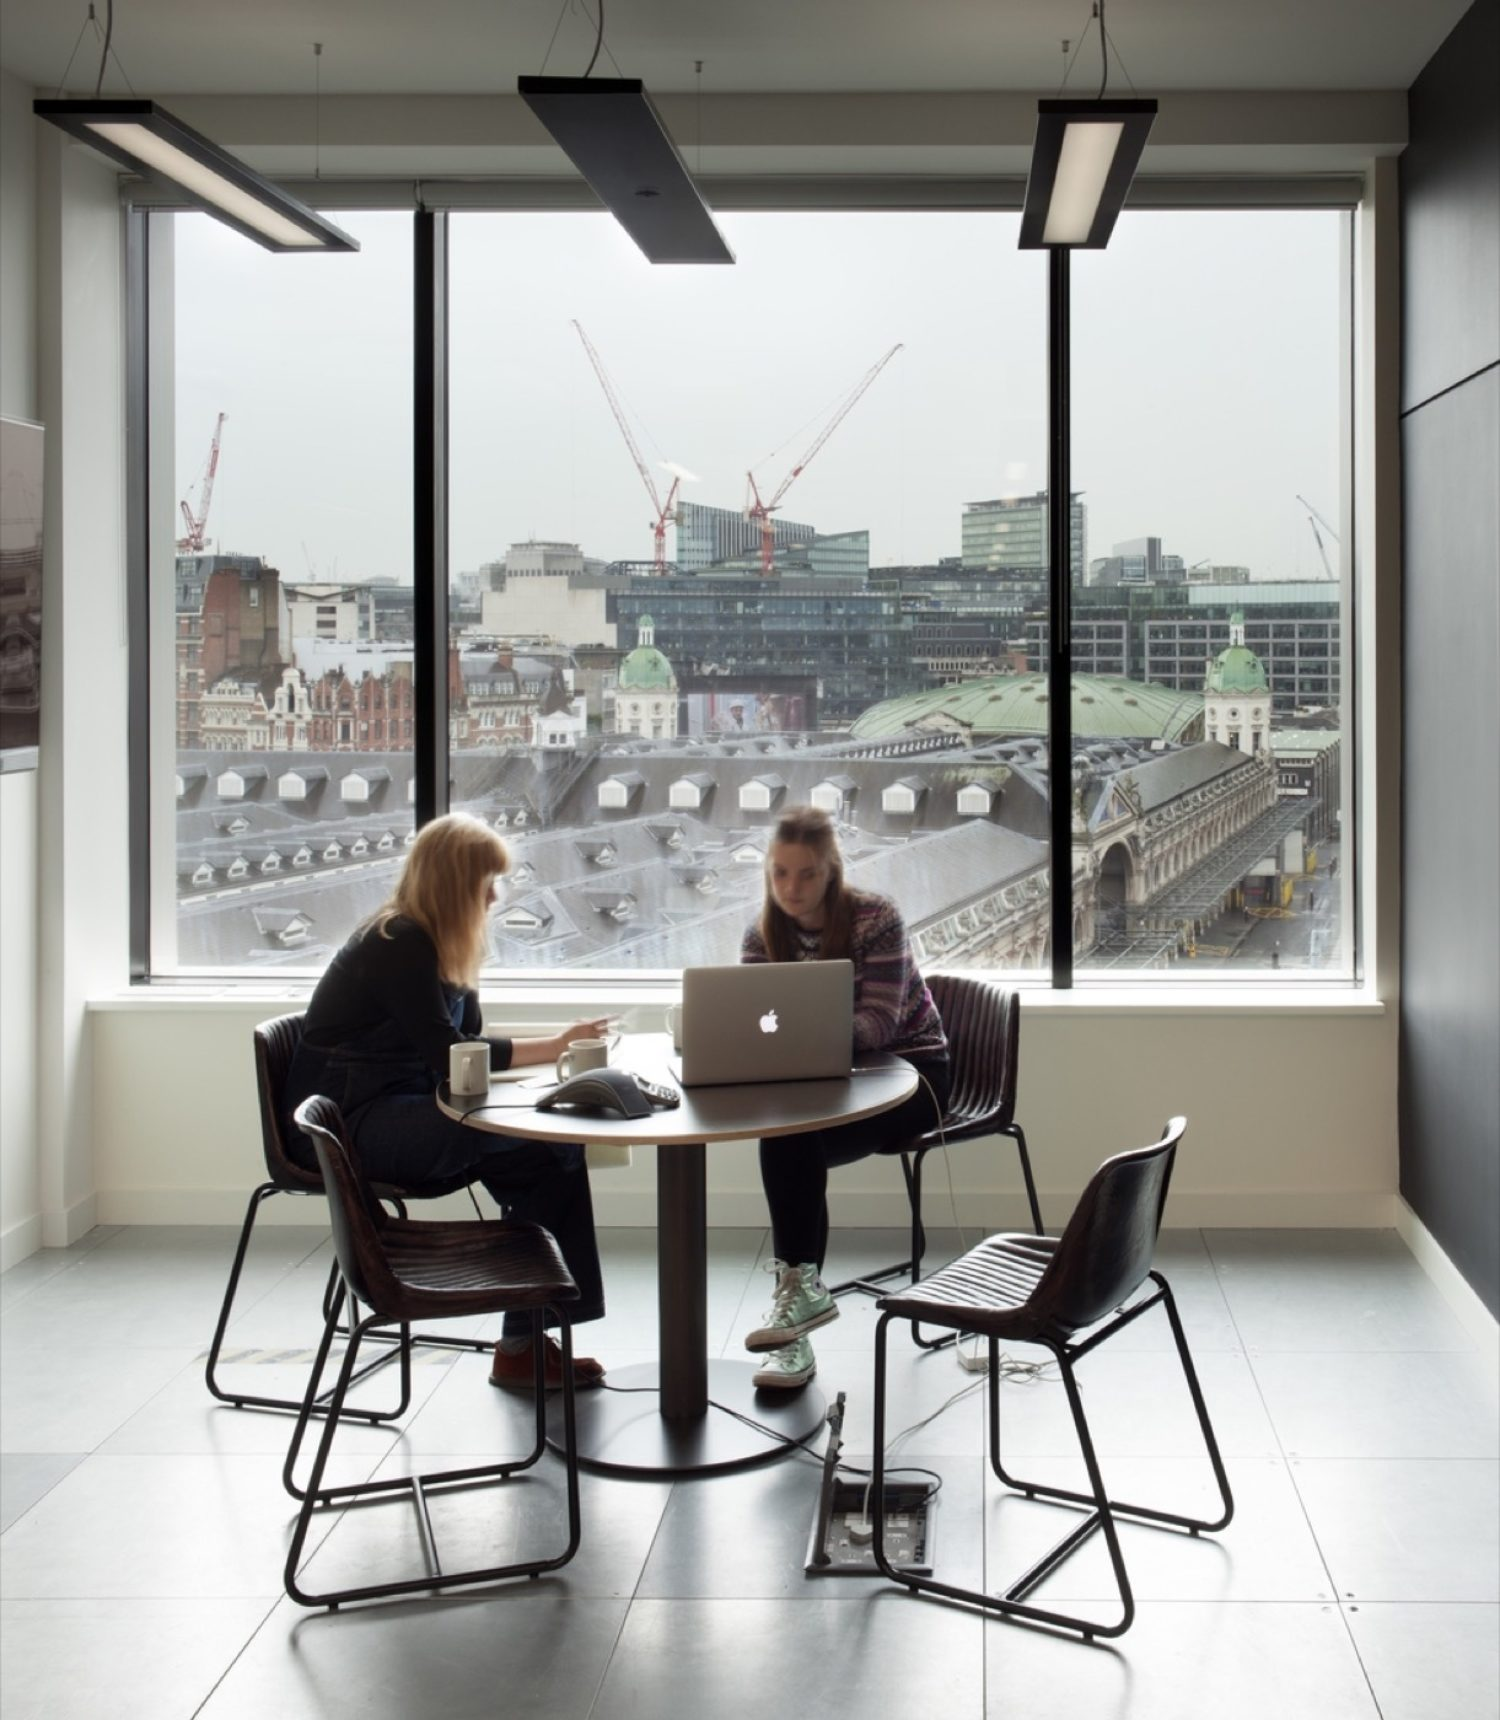 Anomaly meeting space design with natural light